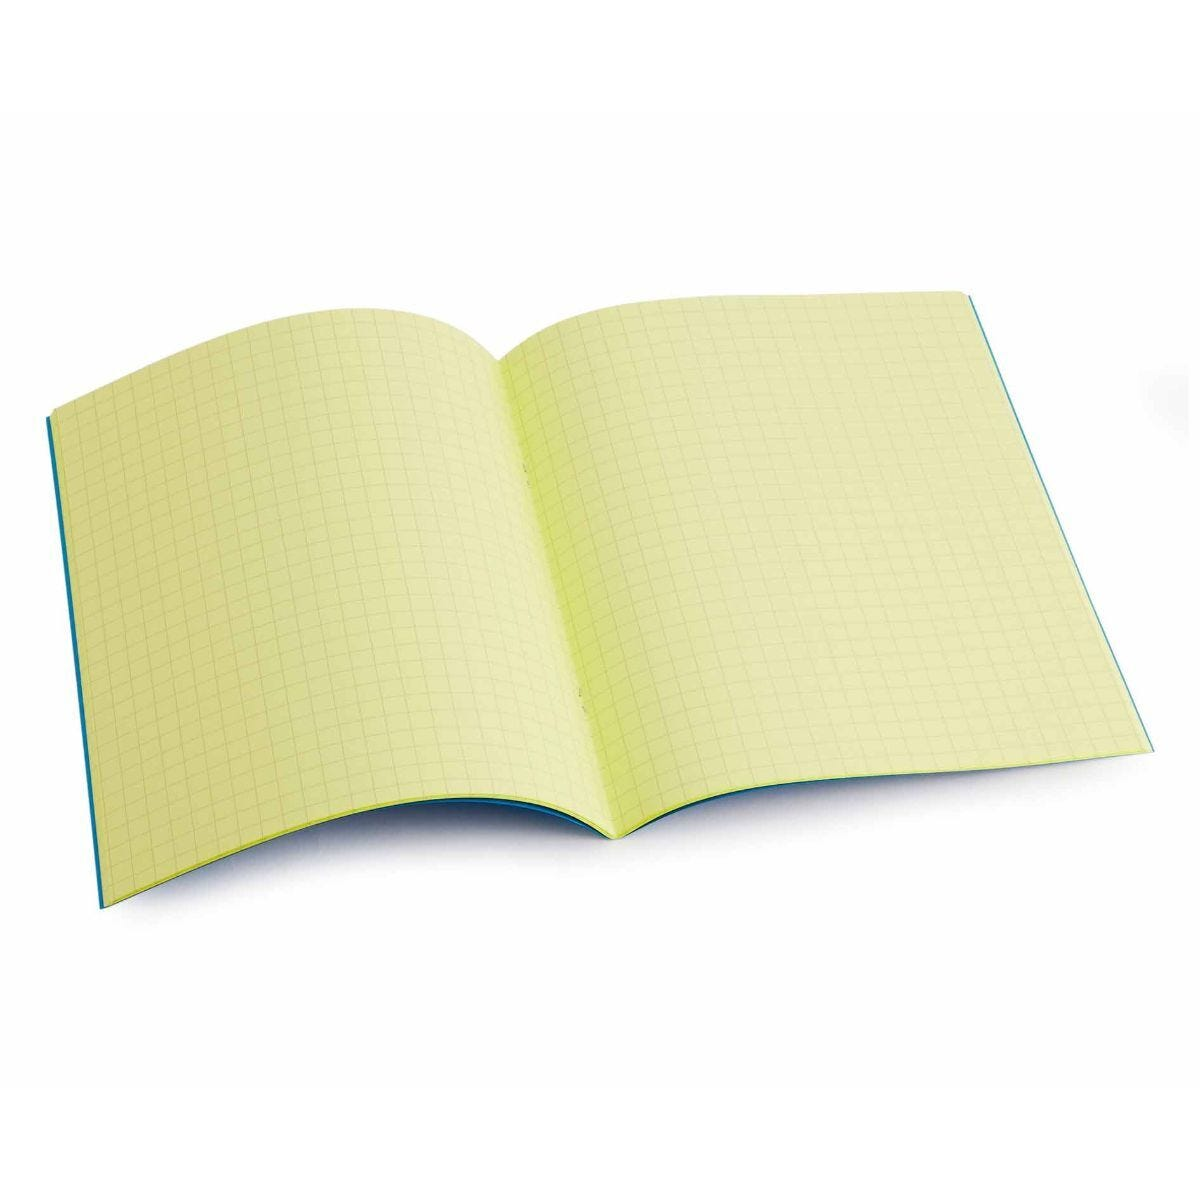 Tinted Exercise Book Standard 7x9 Squared 7.5mm Yellow